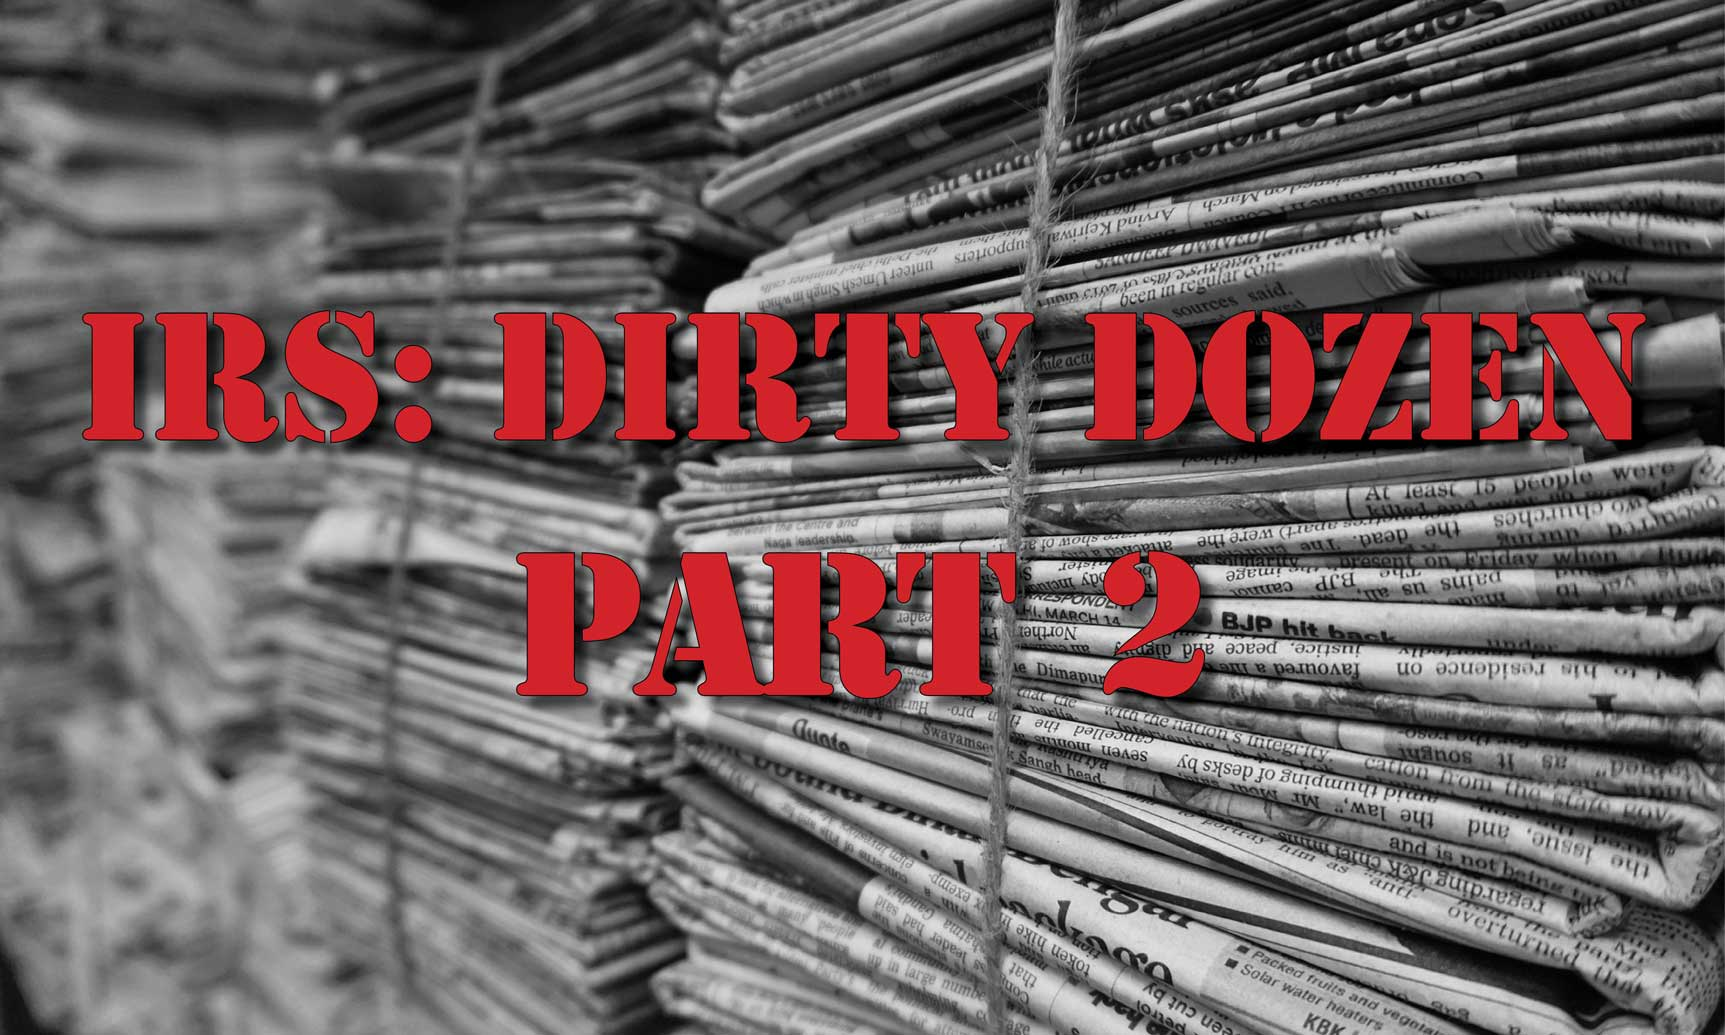 IRS: Dirty Dozen Part 2